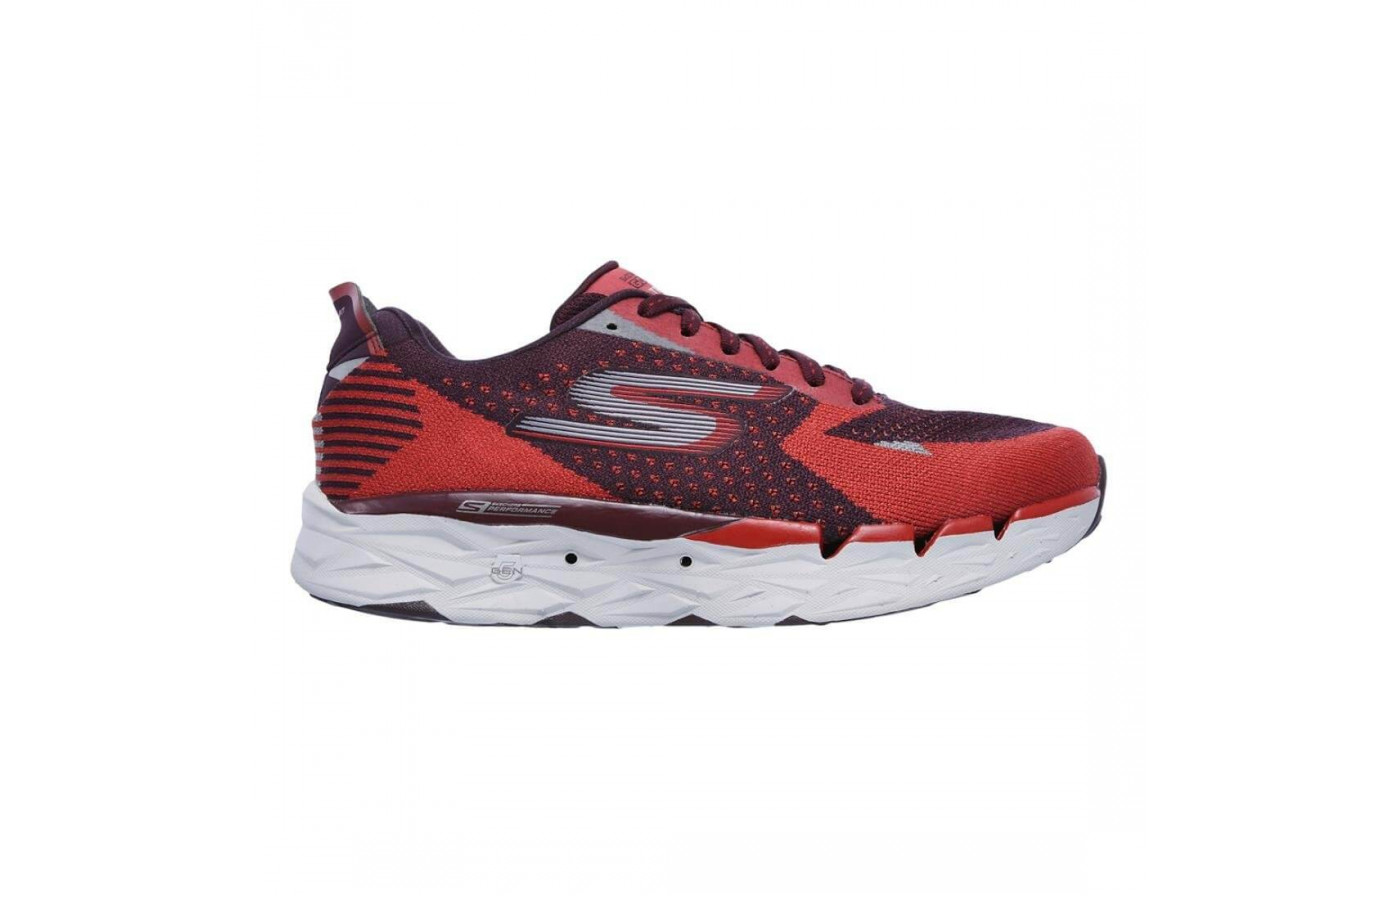 The Skechers GoRun Ultra Road features a supportive FitKnit upper construction